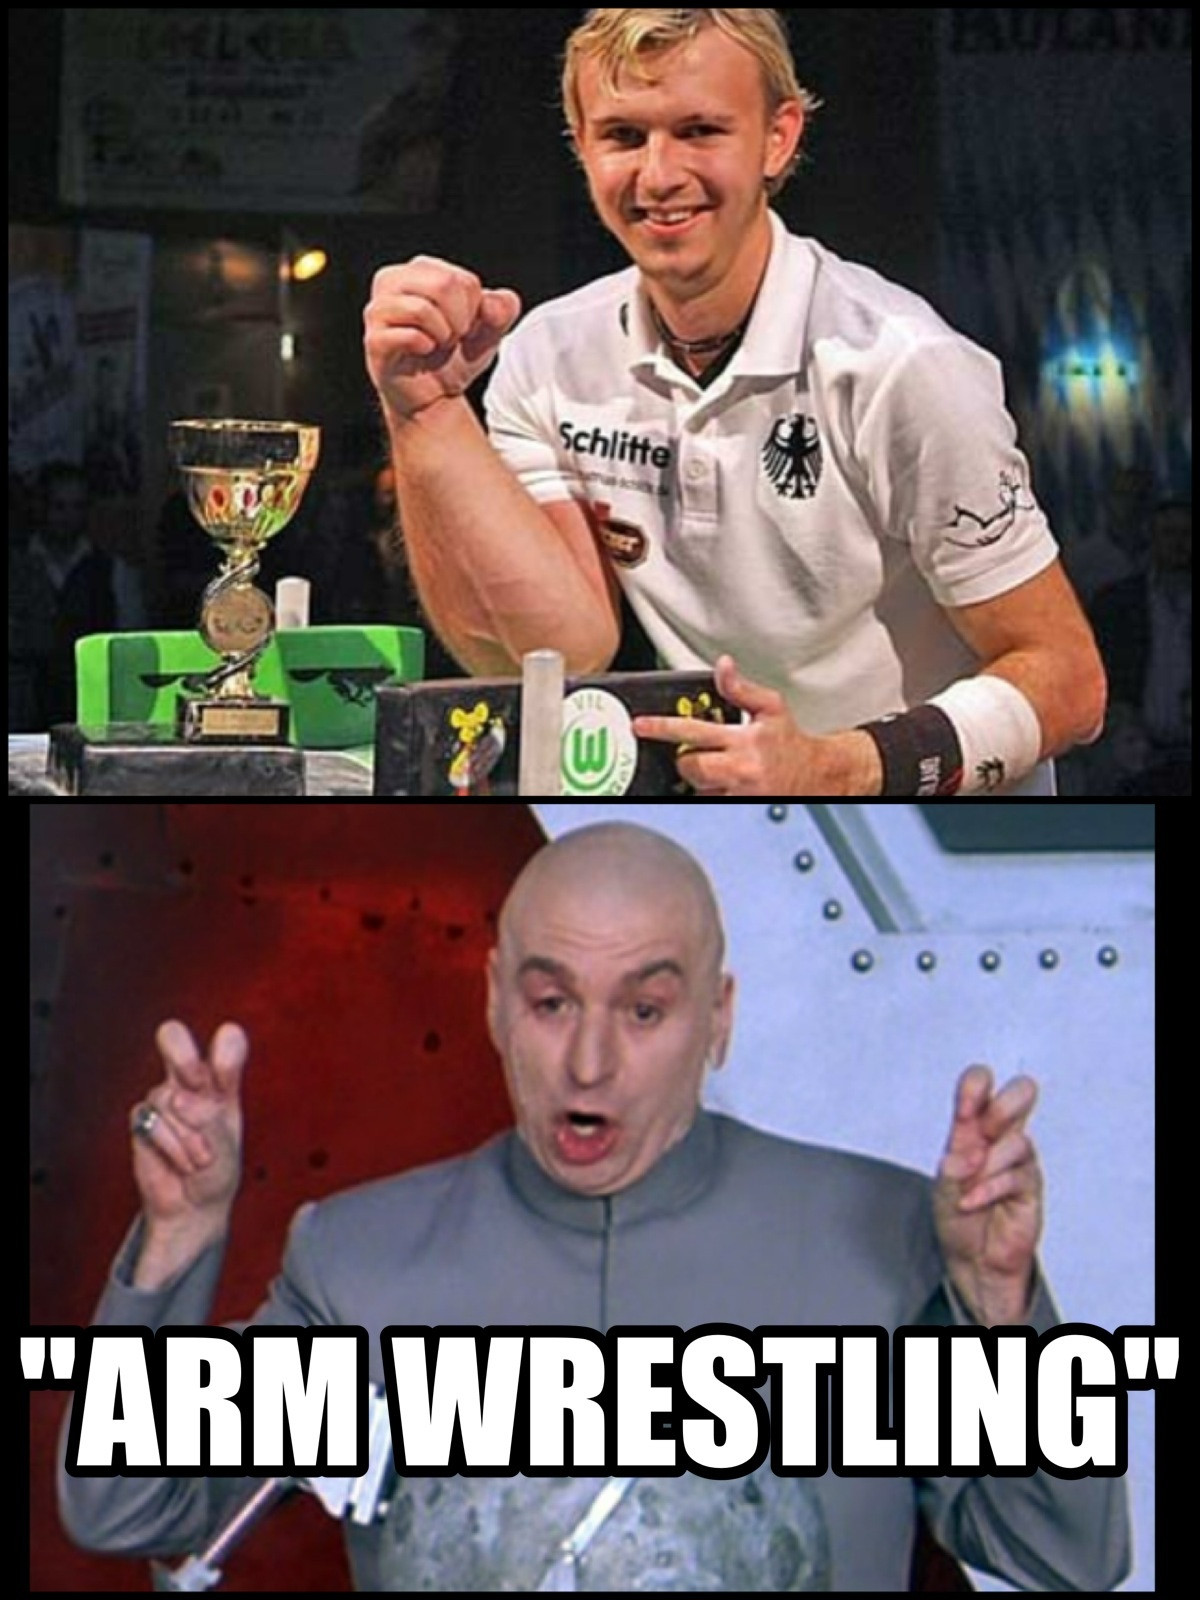 Wrestling is funny